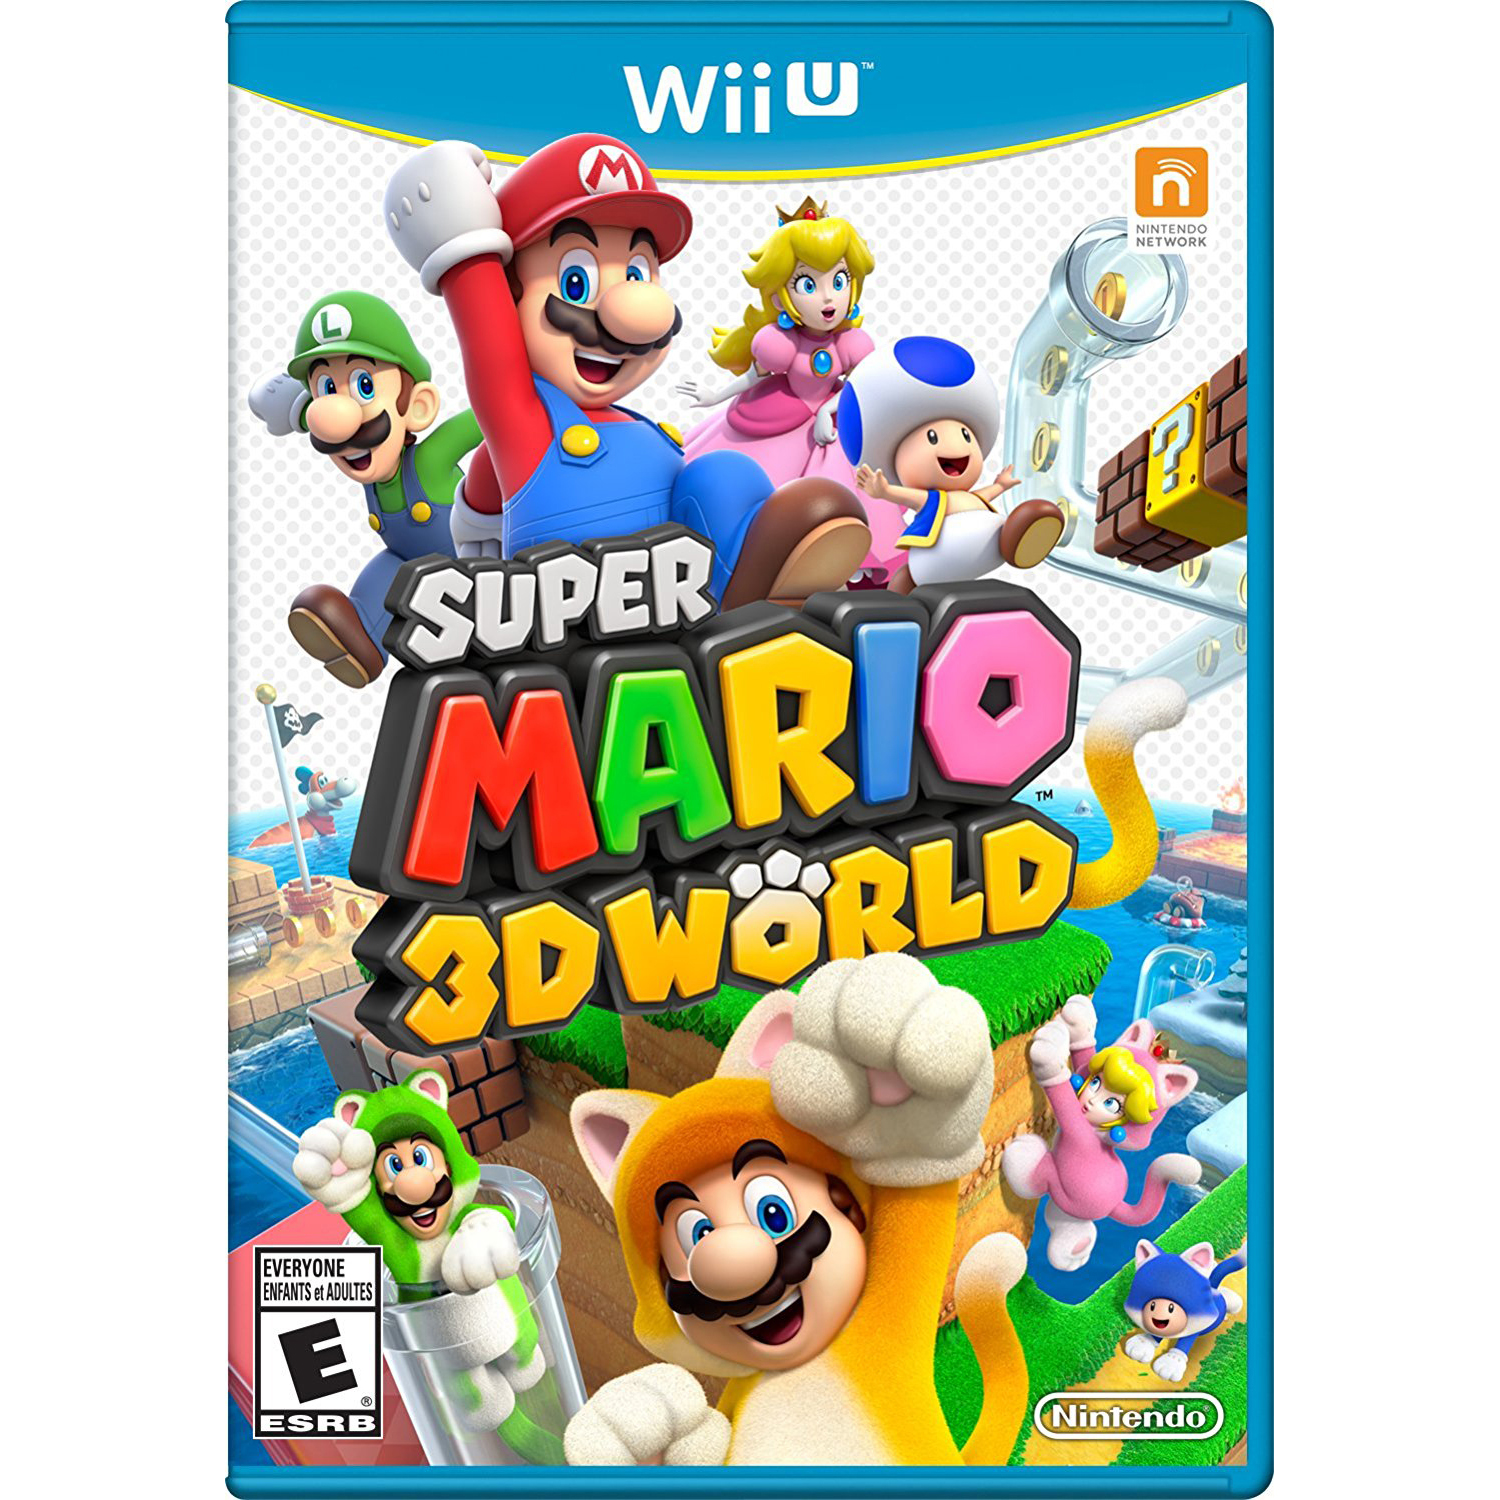 Super Mario 3D World, Nintendo, WIIU, [Digital Download], 0004549666012